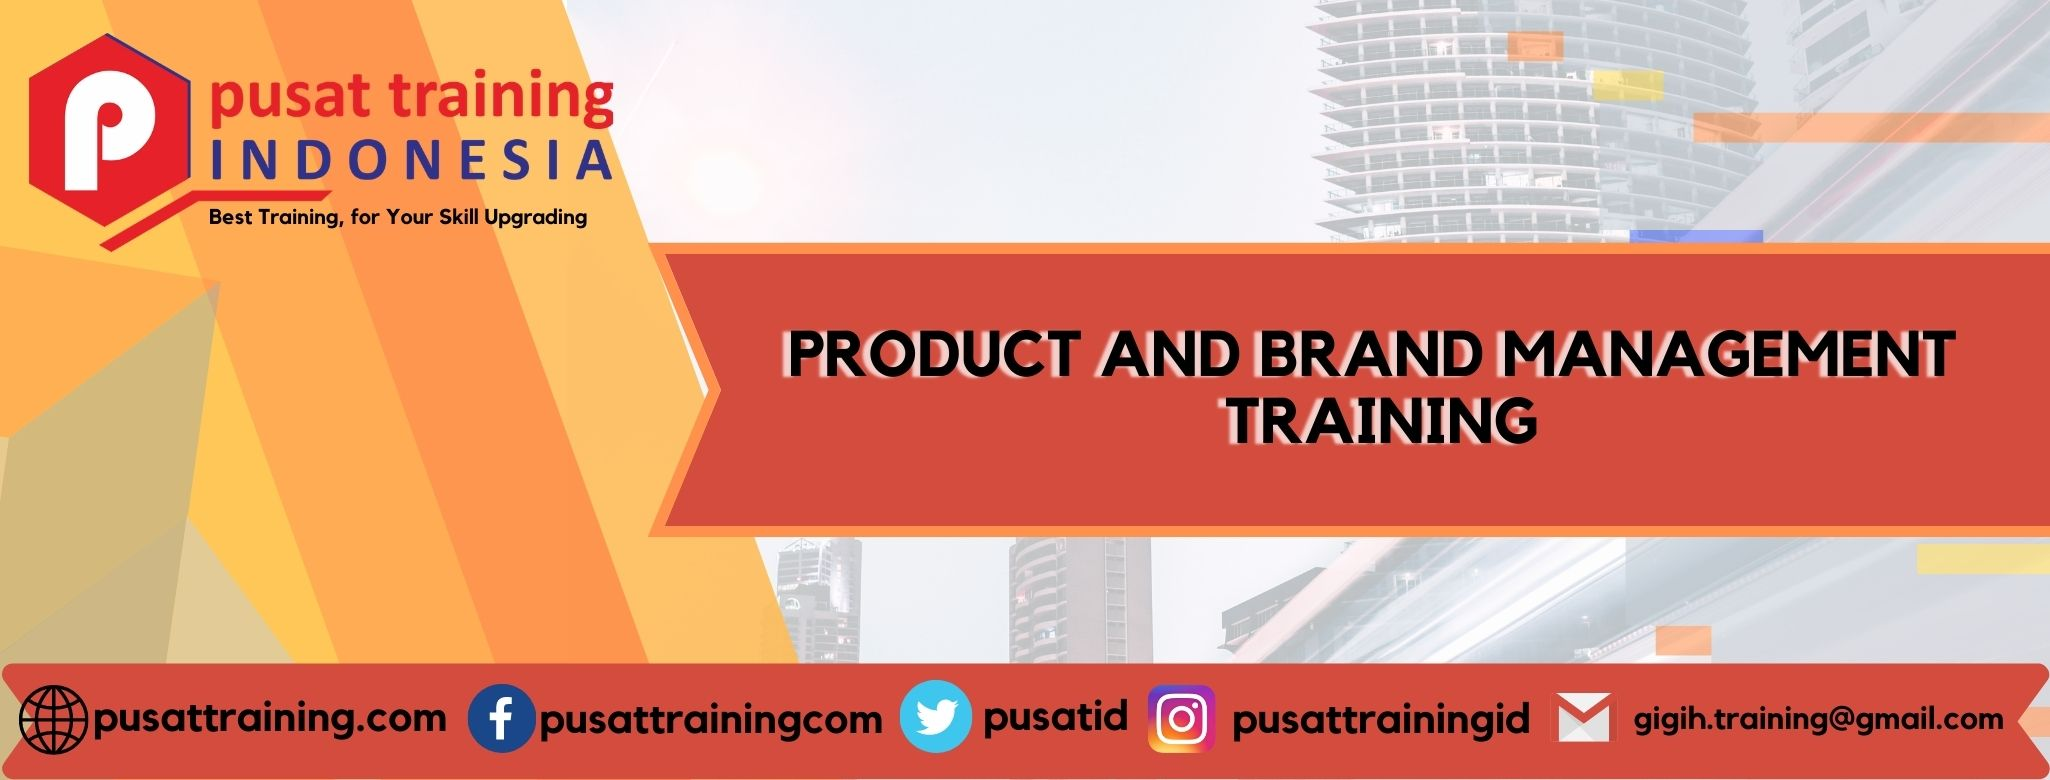 PRODUCT AND BRAND MANAGEMENT TRAINING